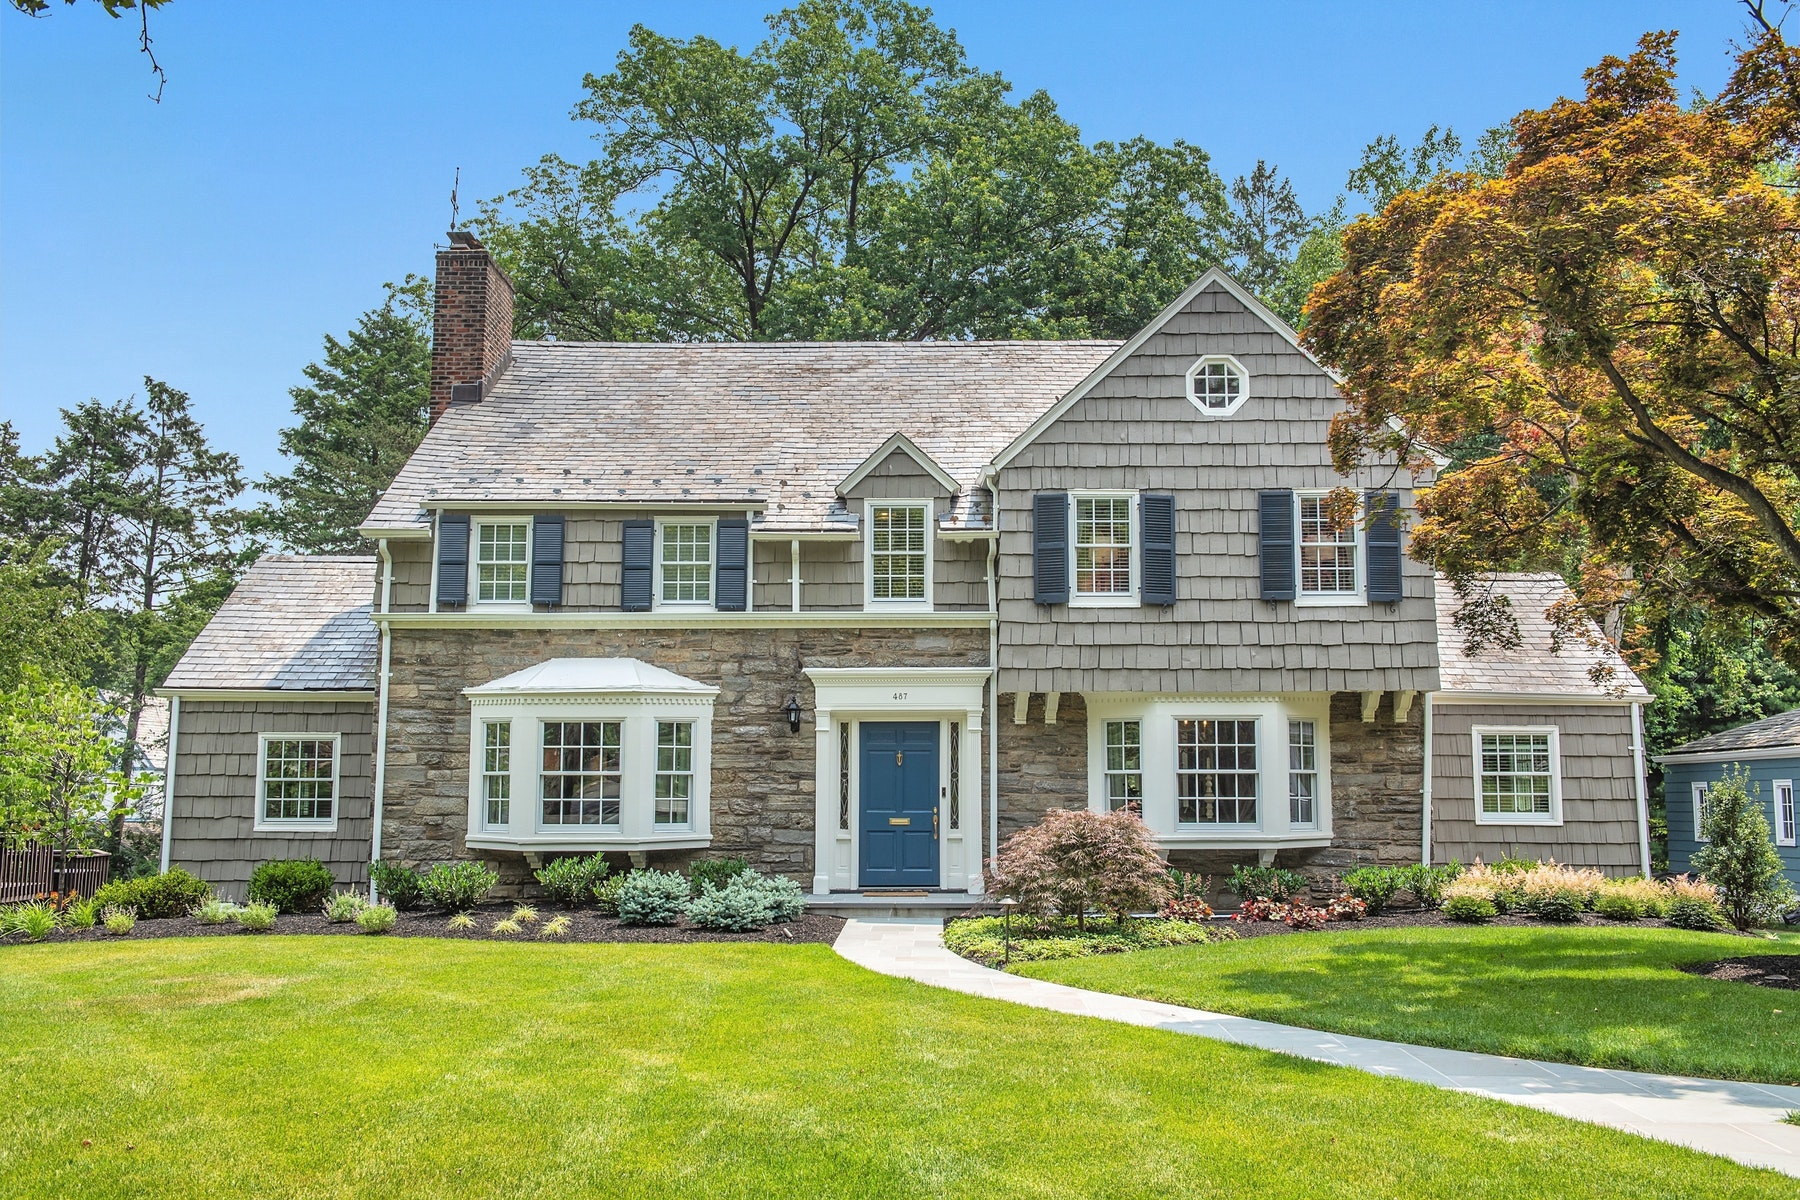 Single Family Home for Sale at Completely Renovated Glen Ridge Colonial 487 Ridgewood Avenue, Glen Ridge, New Jersey 07028 United States